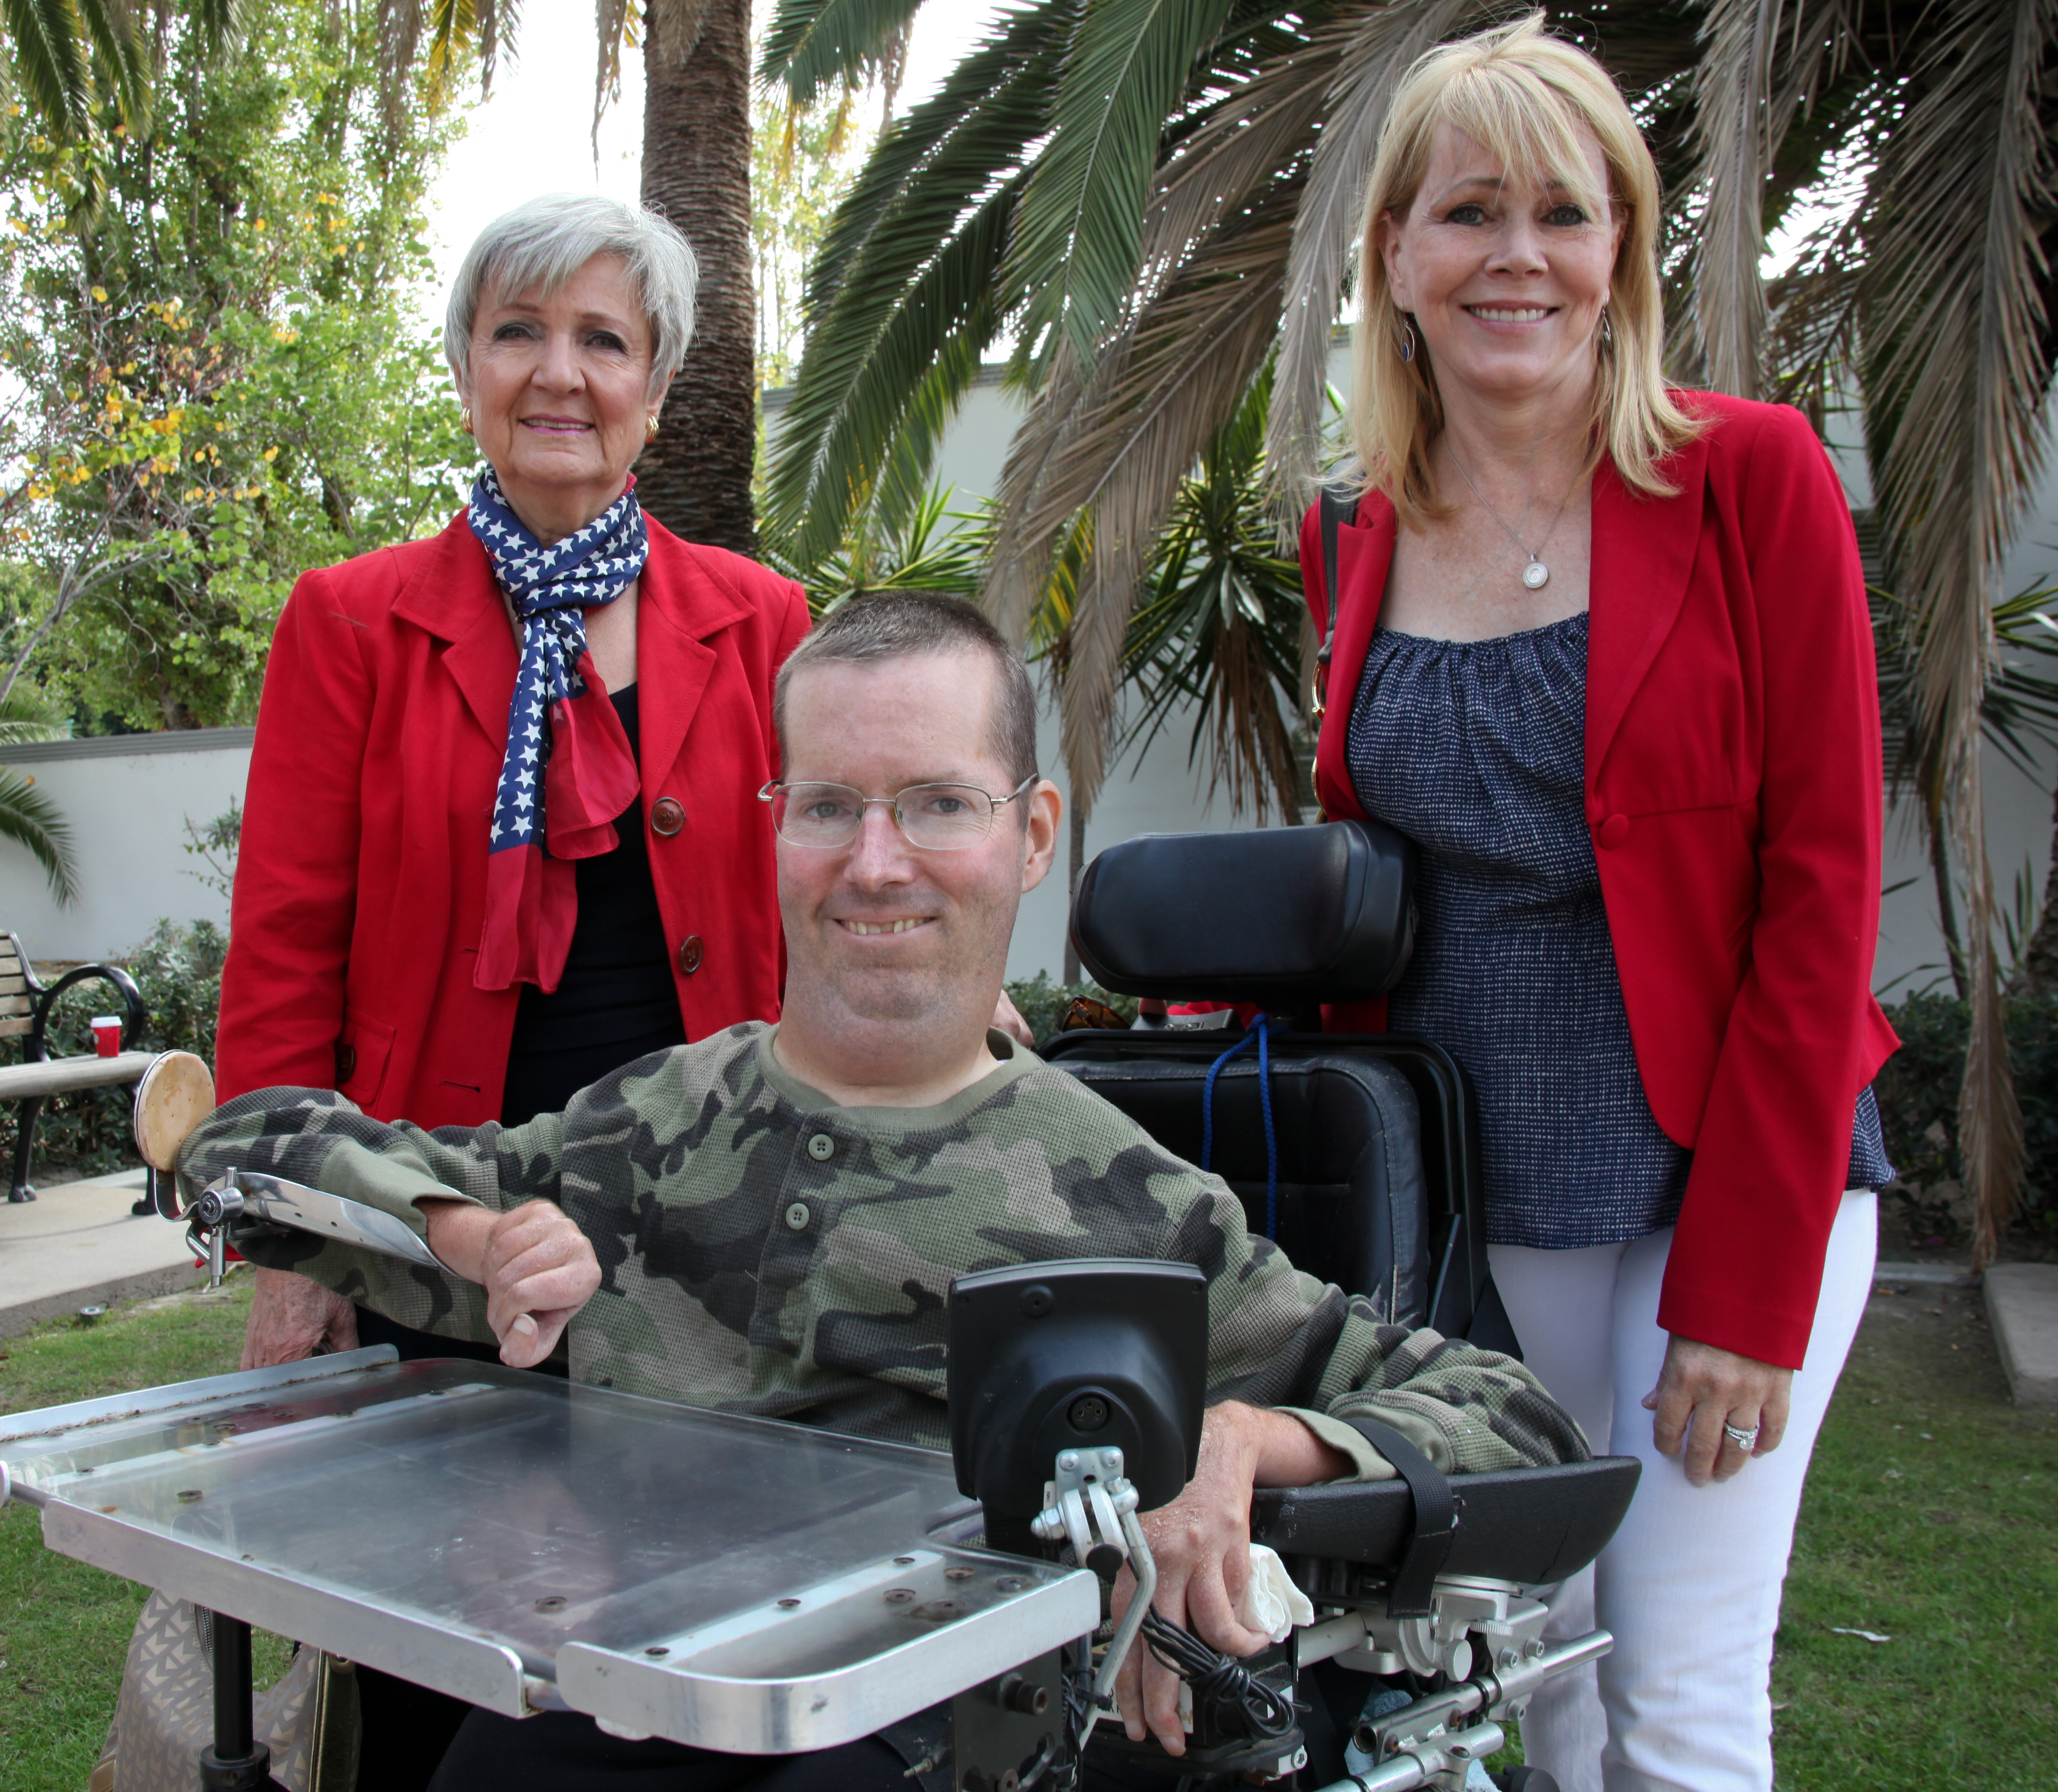 City Council members Kerry Ferguson, Derek Reeve and Pam Patterson gather for a photo at San Juan Capistrano's Veterans Day ceremony in 2014. Photo: Allison Jarrell